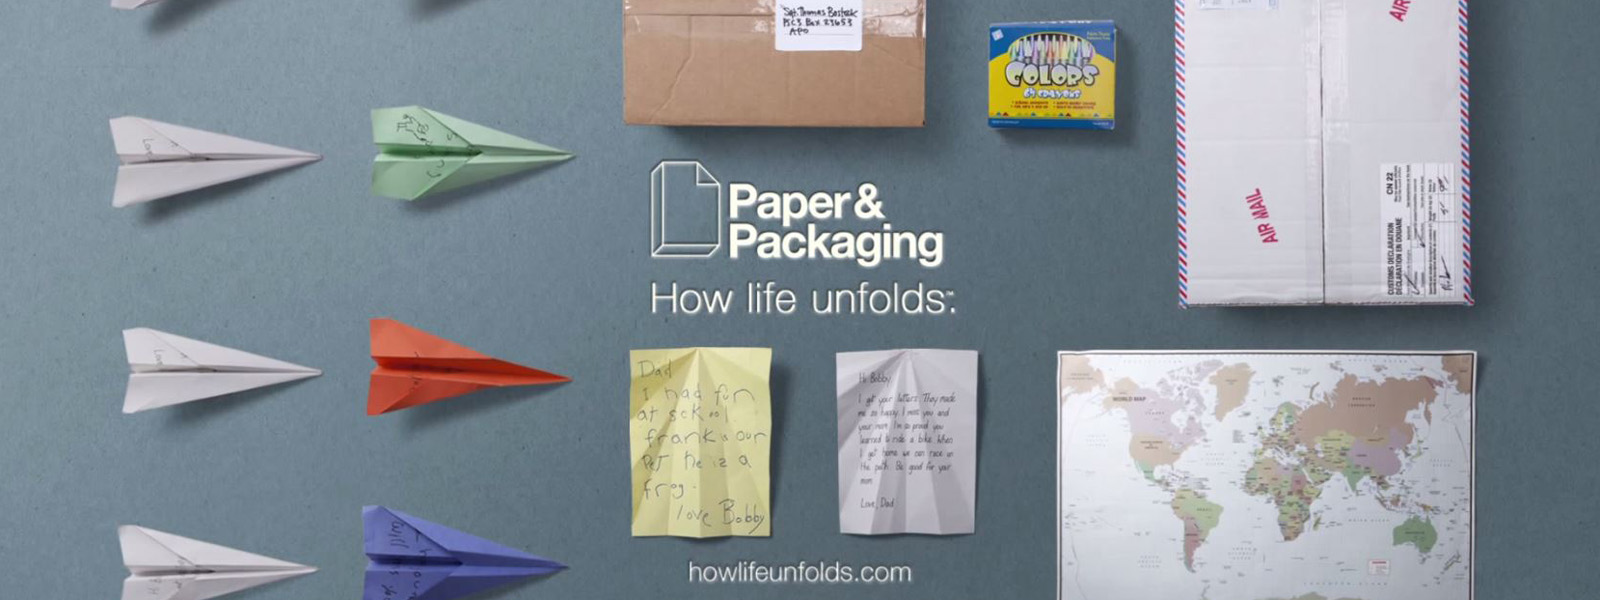 Paper and Packaging Industry Unfolds National Ad Campaign